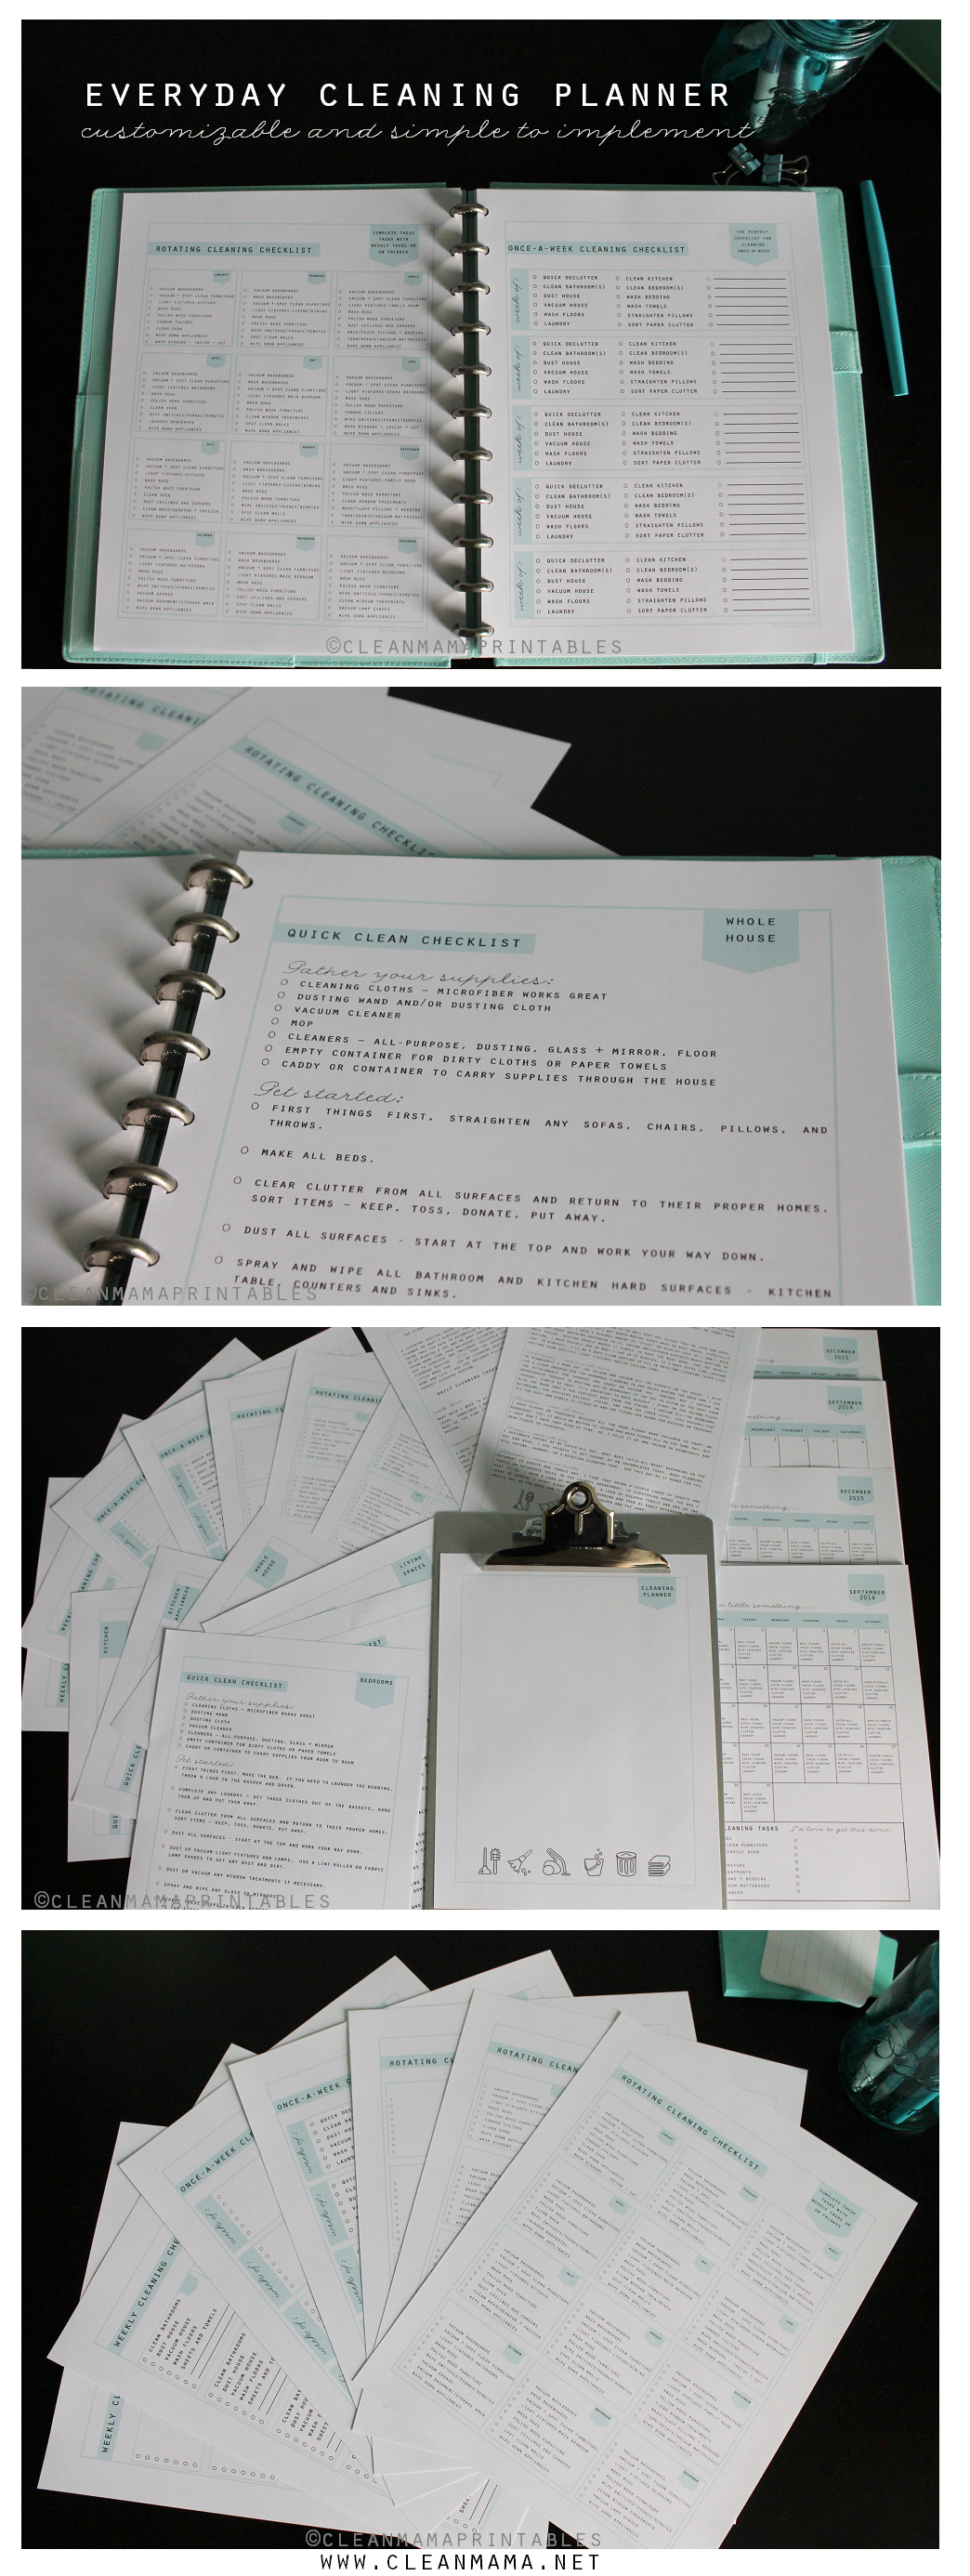 Clean Mama's Everyday Cleaning Planner via Clean Mama